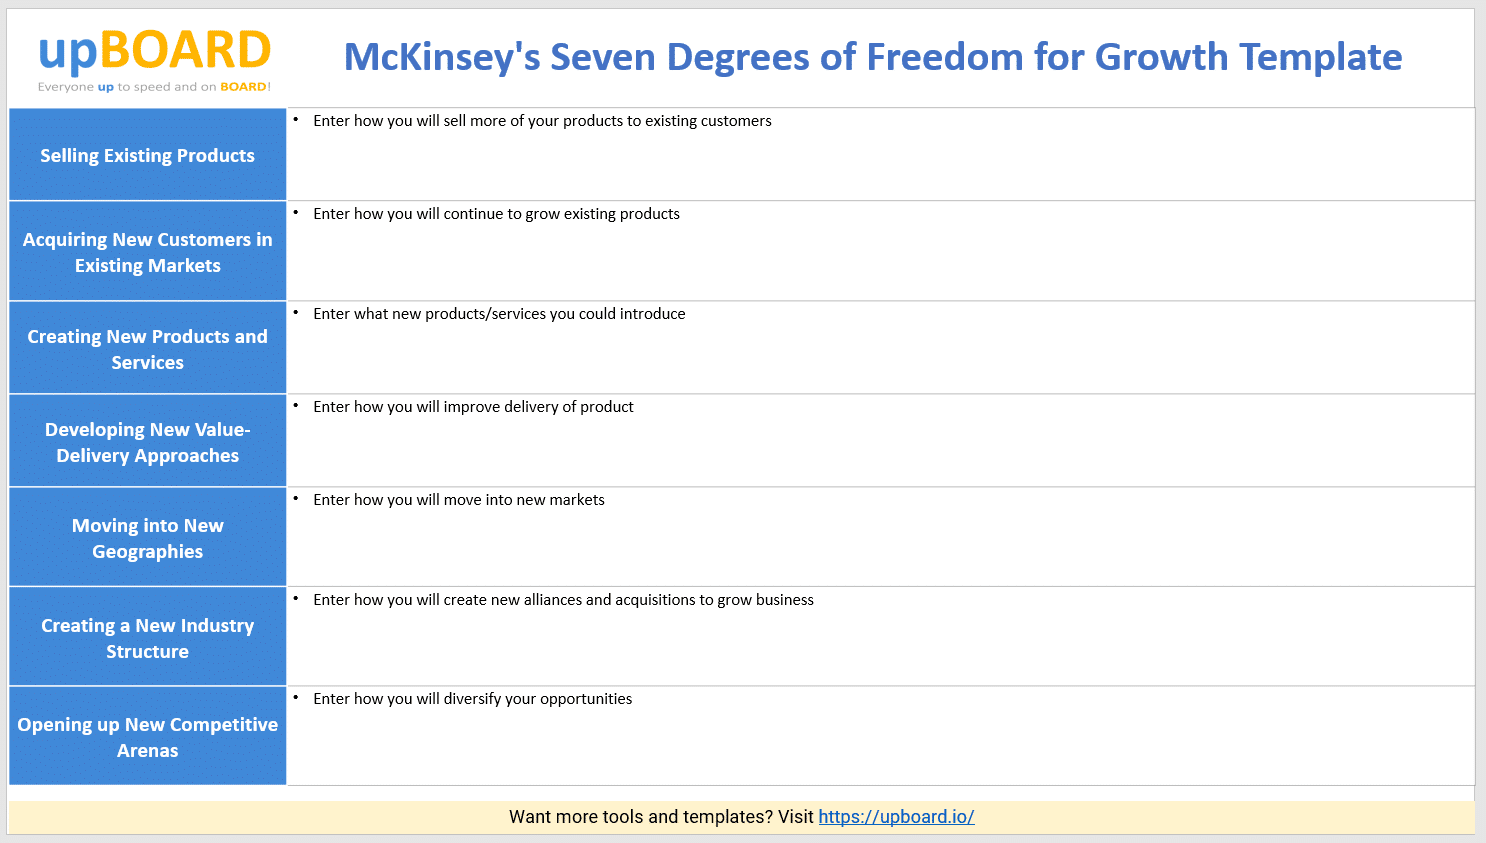 McKinsey_s 7 Degrees of Freedom for Growth Template - Free PowerPoint Tool